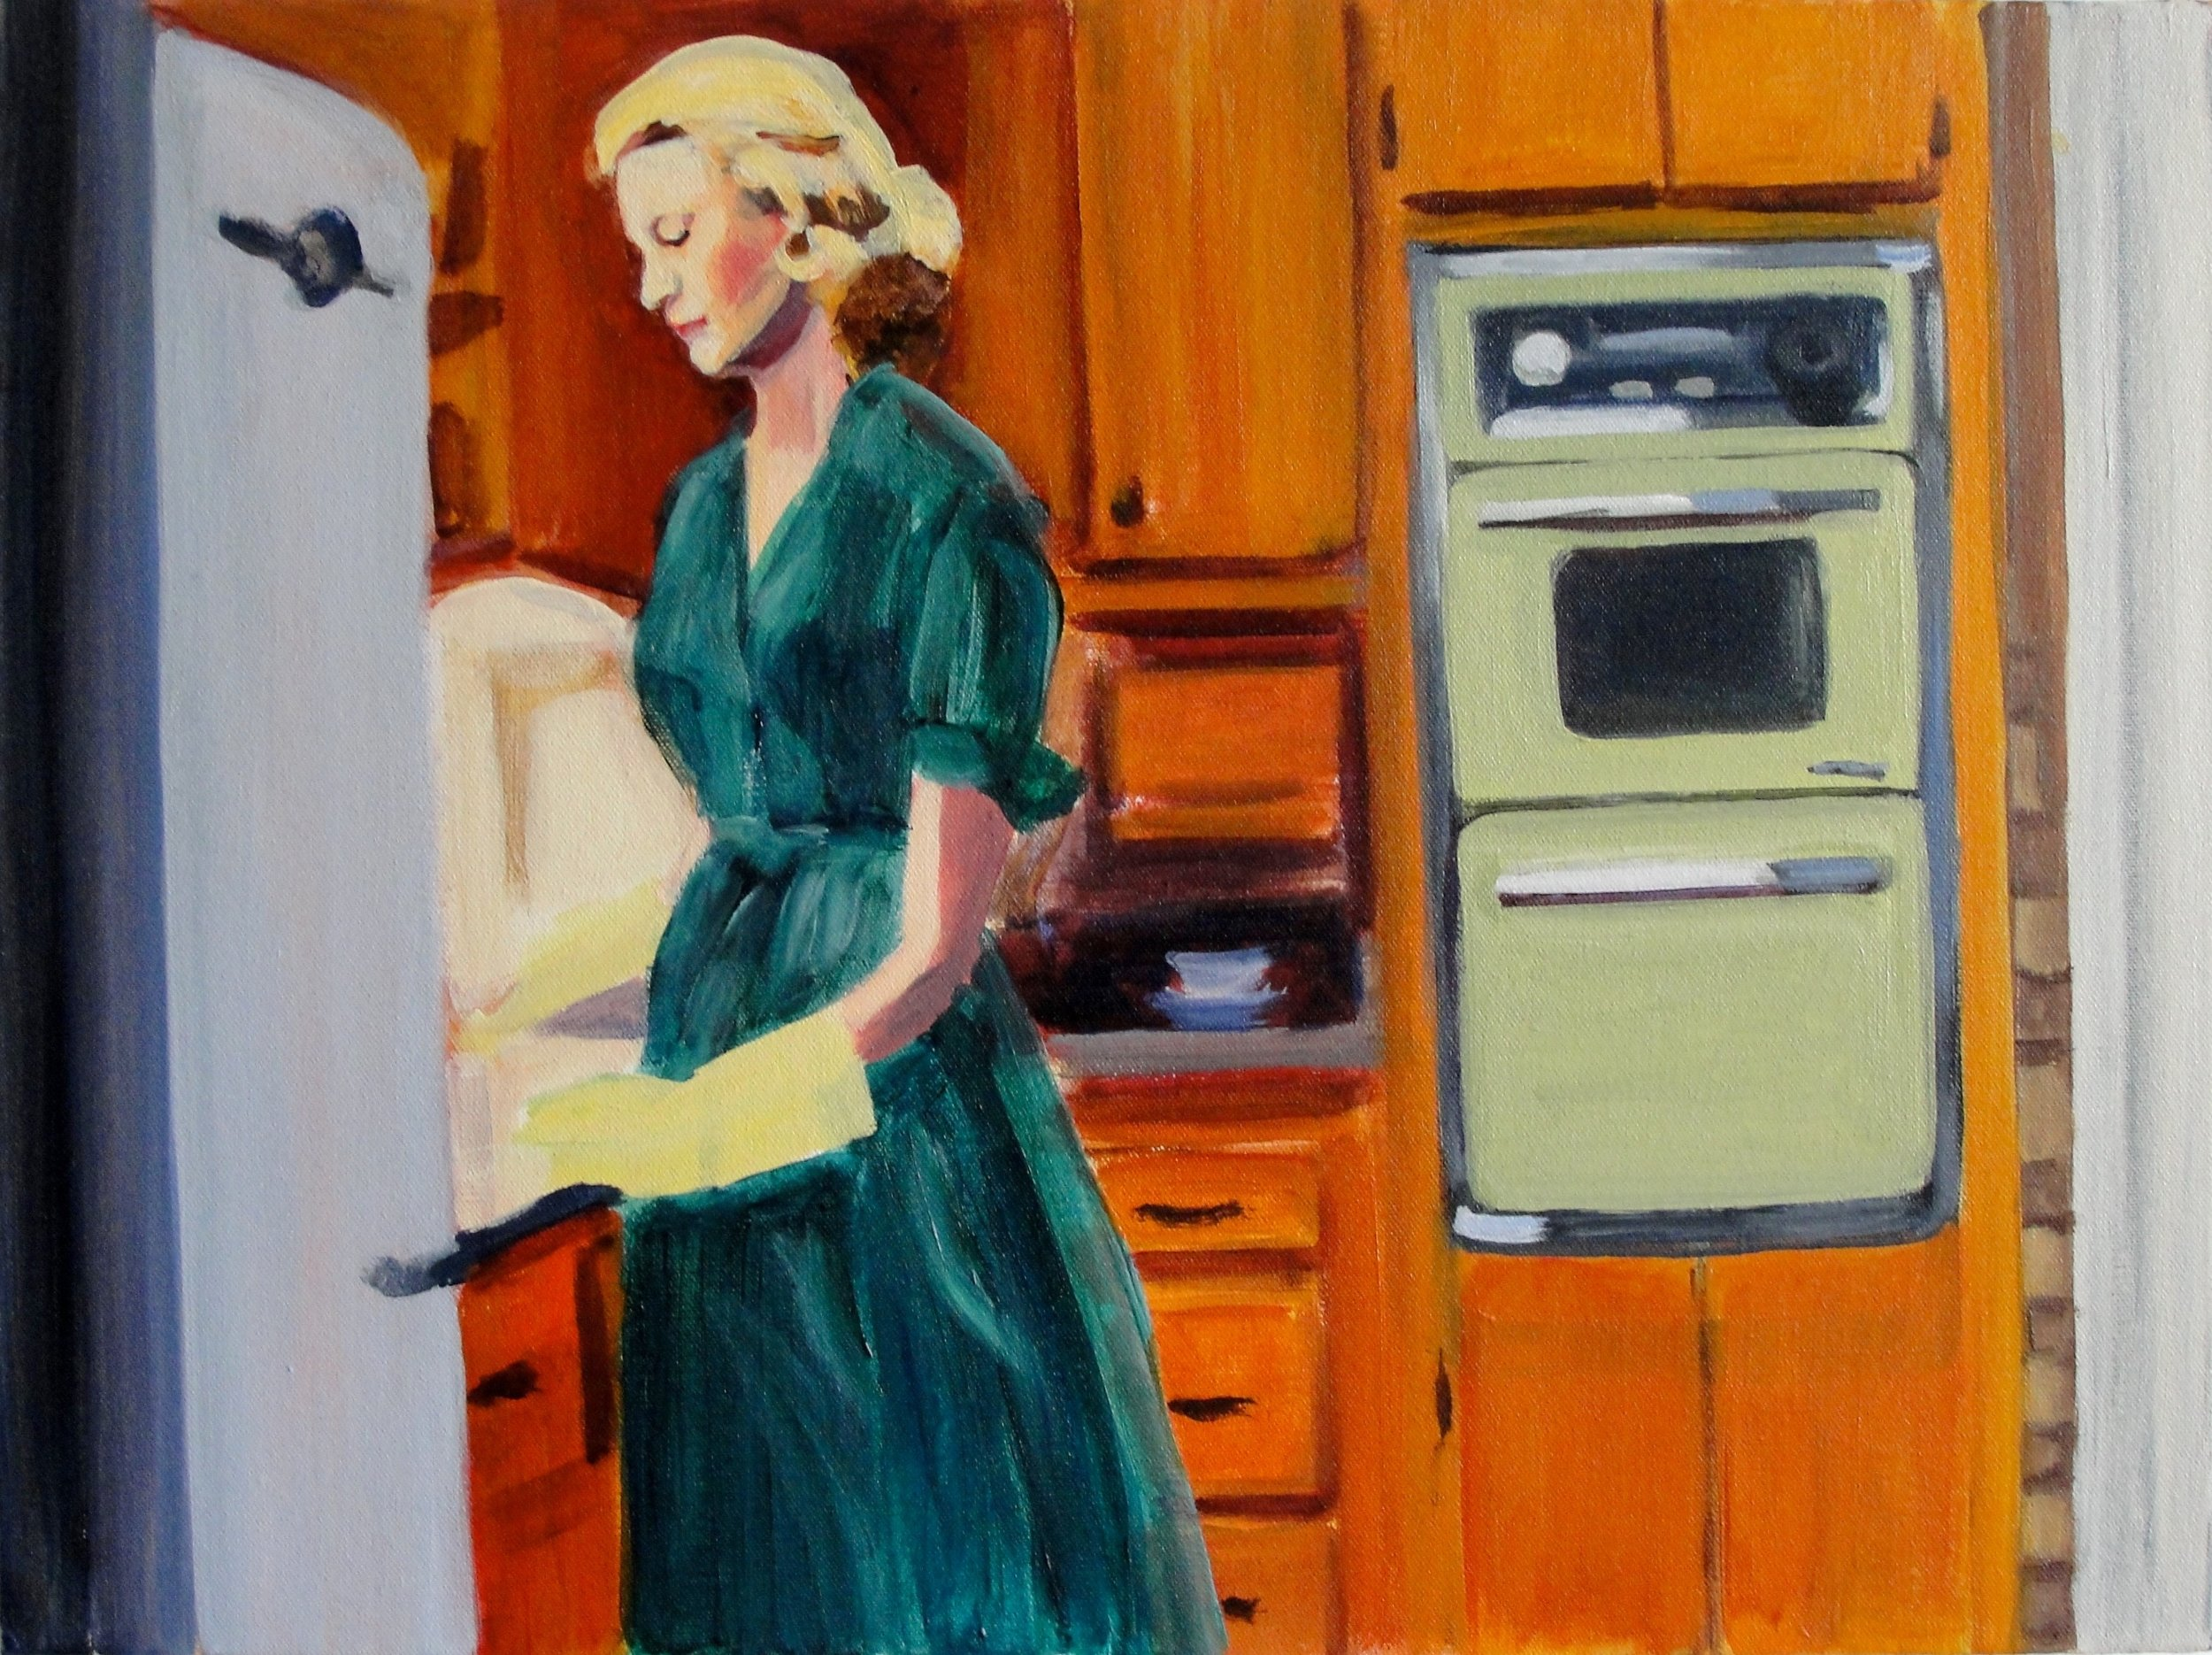 BETTY WASHING DISHES (2010). Acrylic on canvas, 18 x 24 inches. Private collection, U.S.